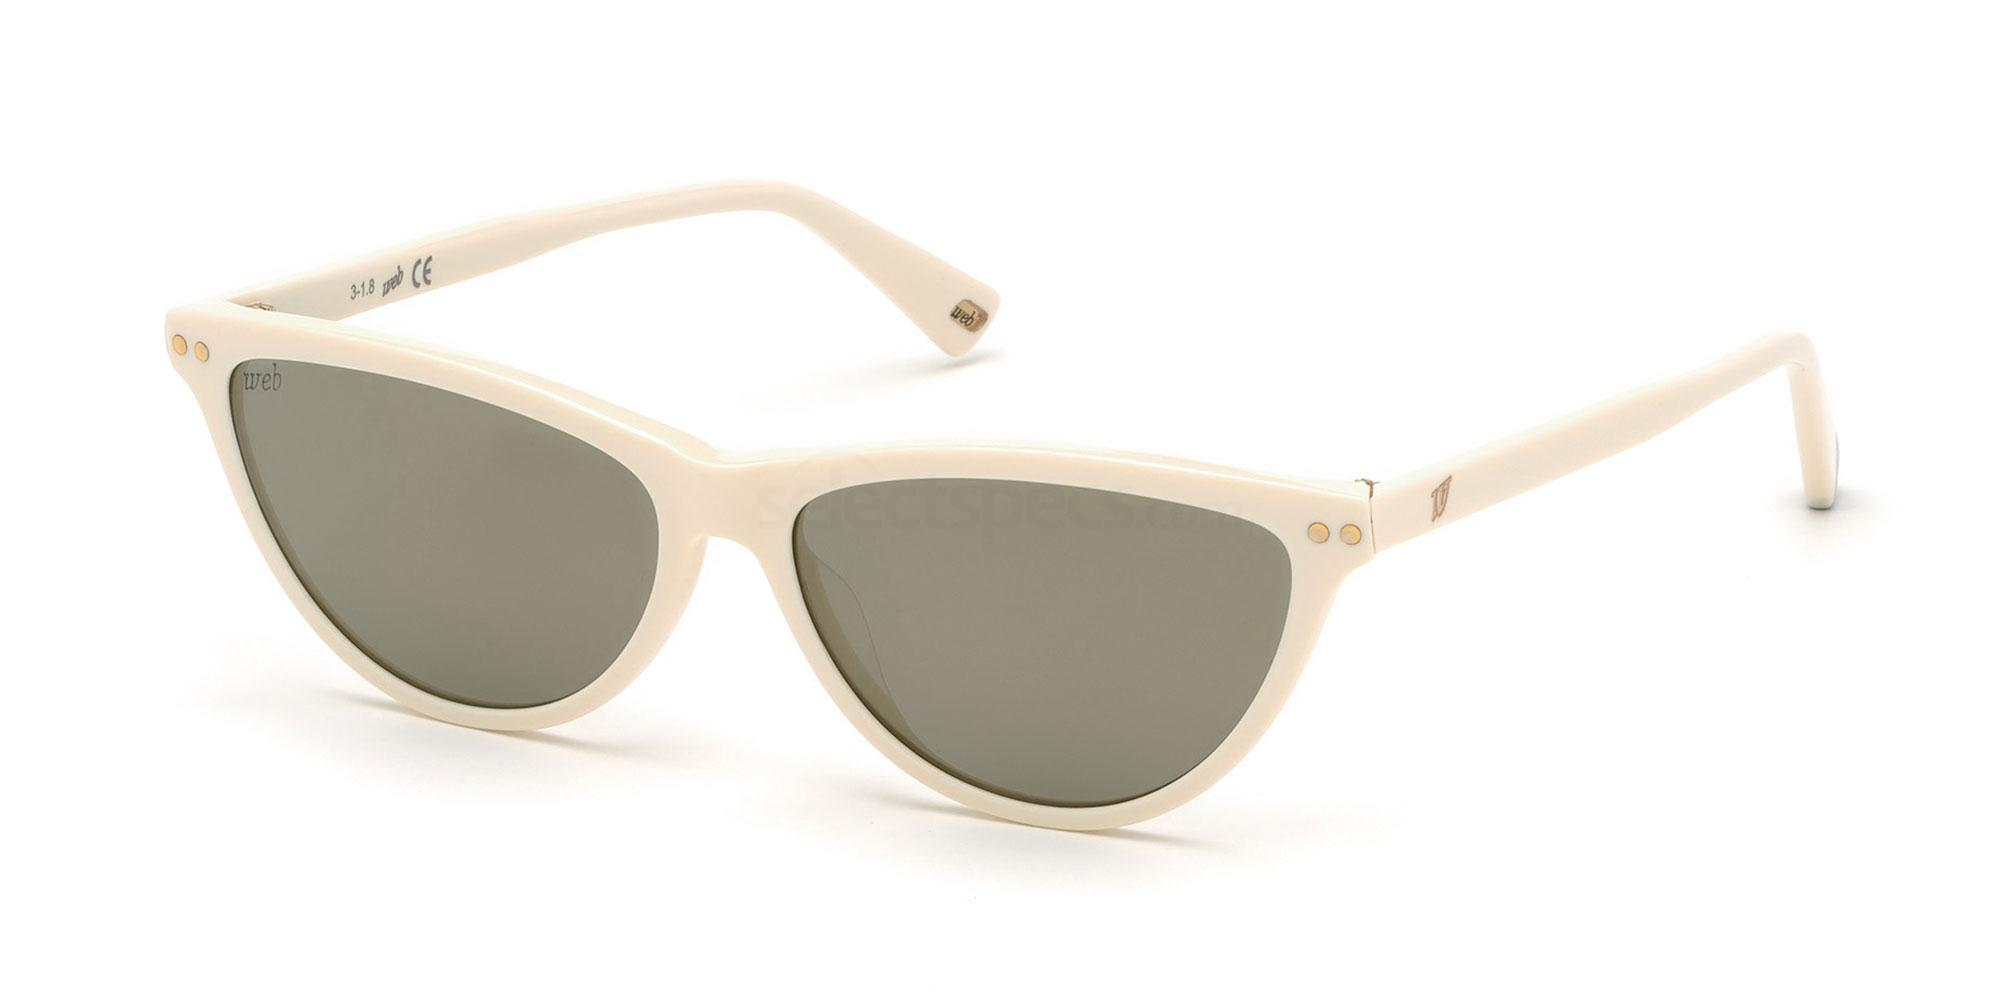 beyonce sunglasses style steal